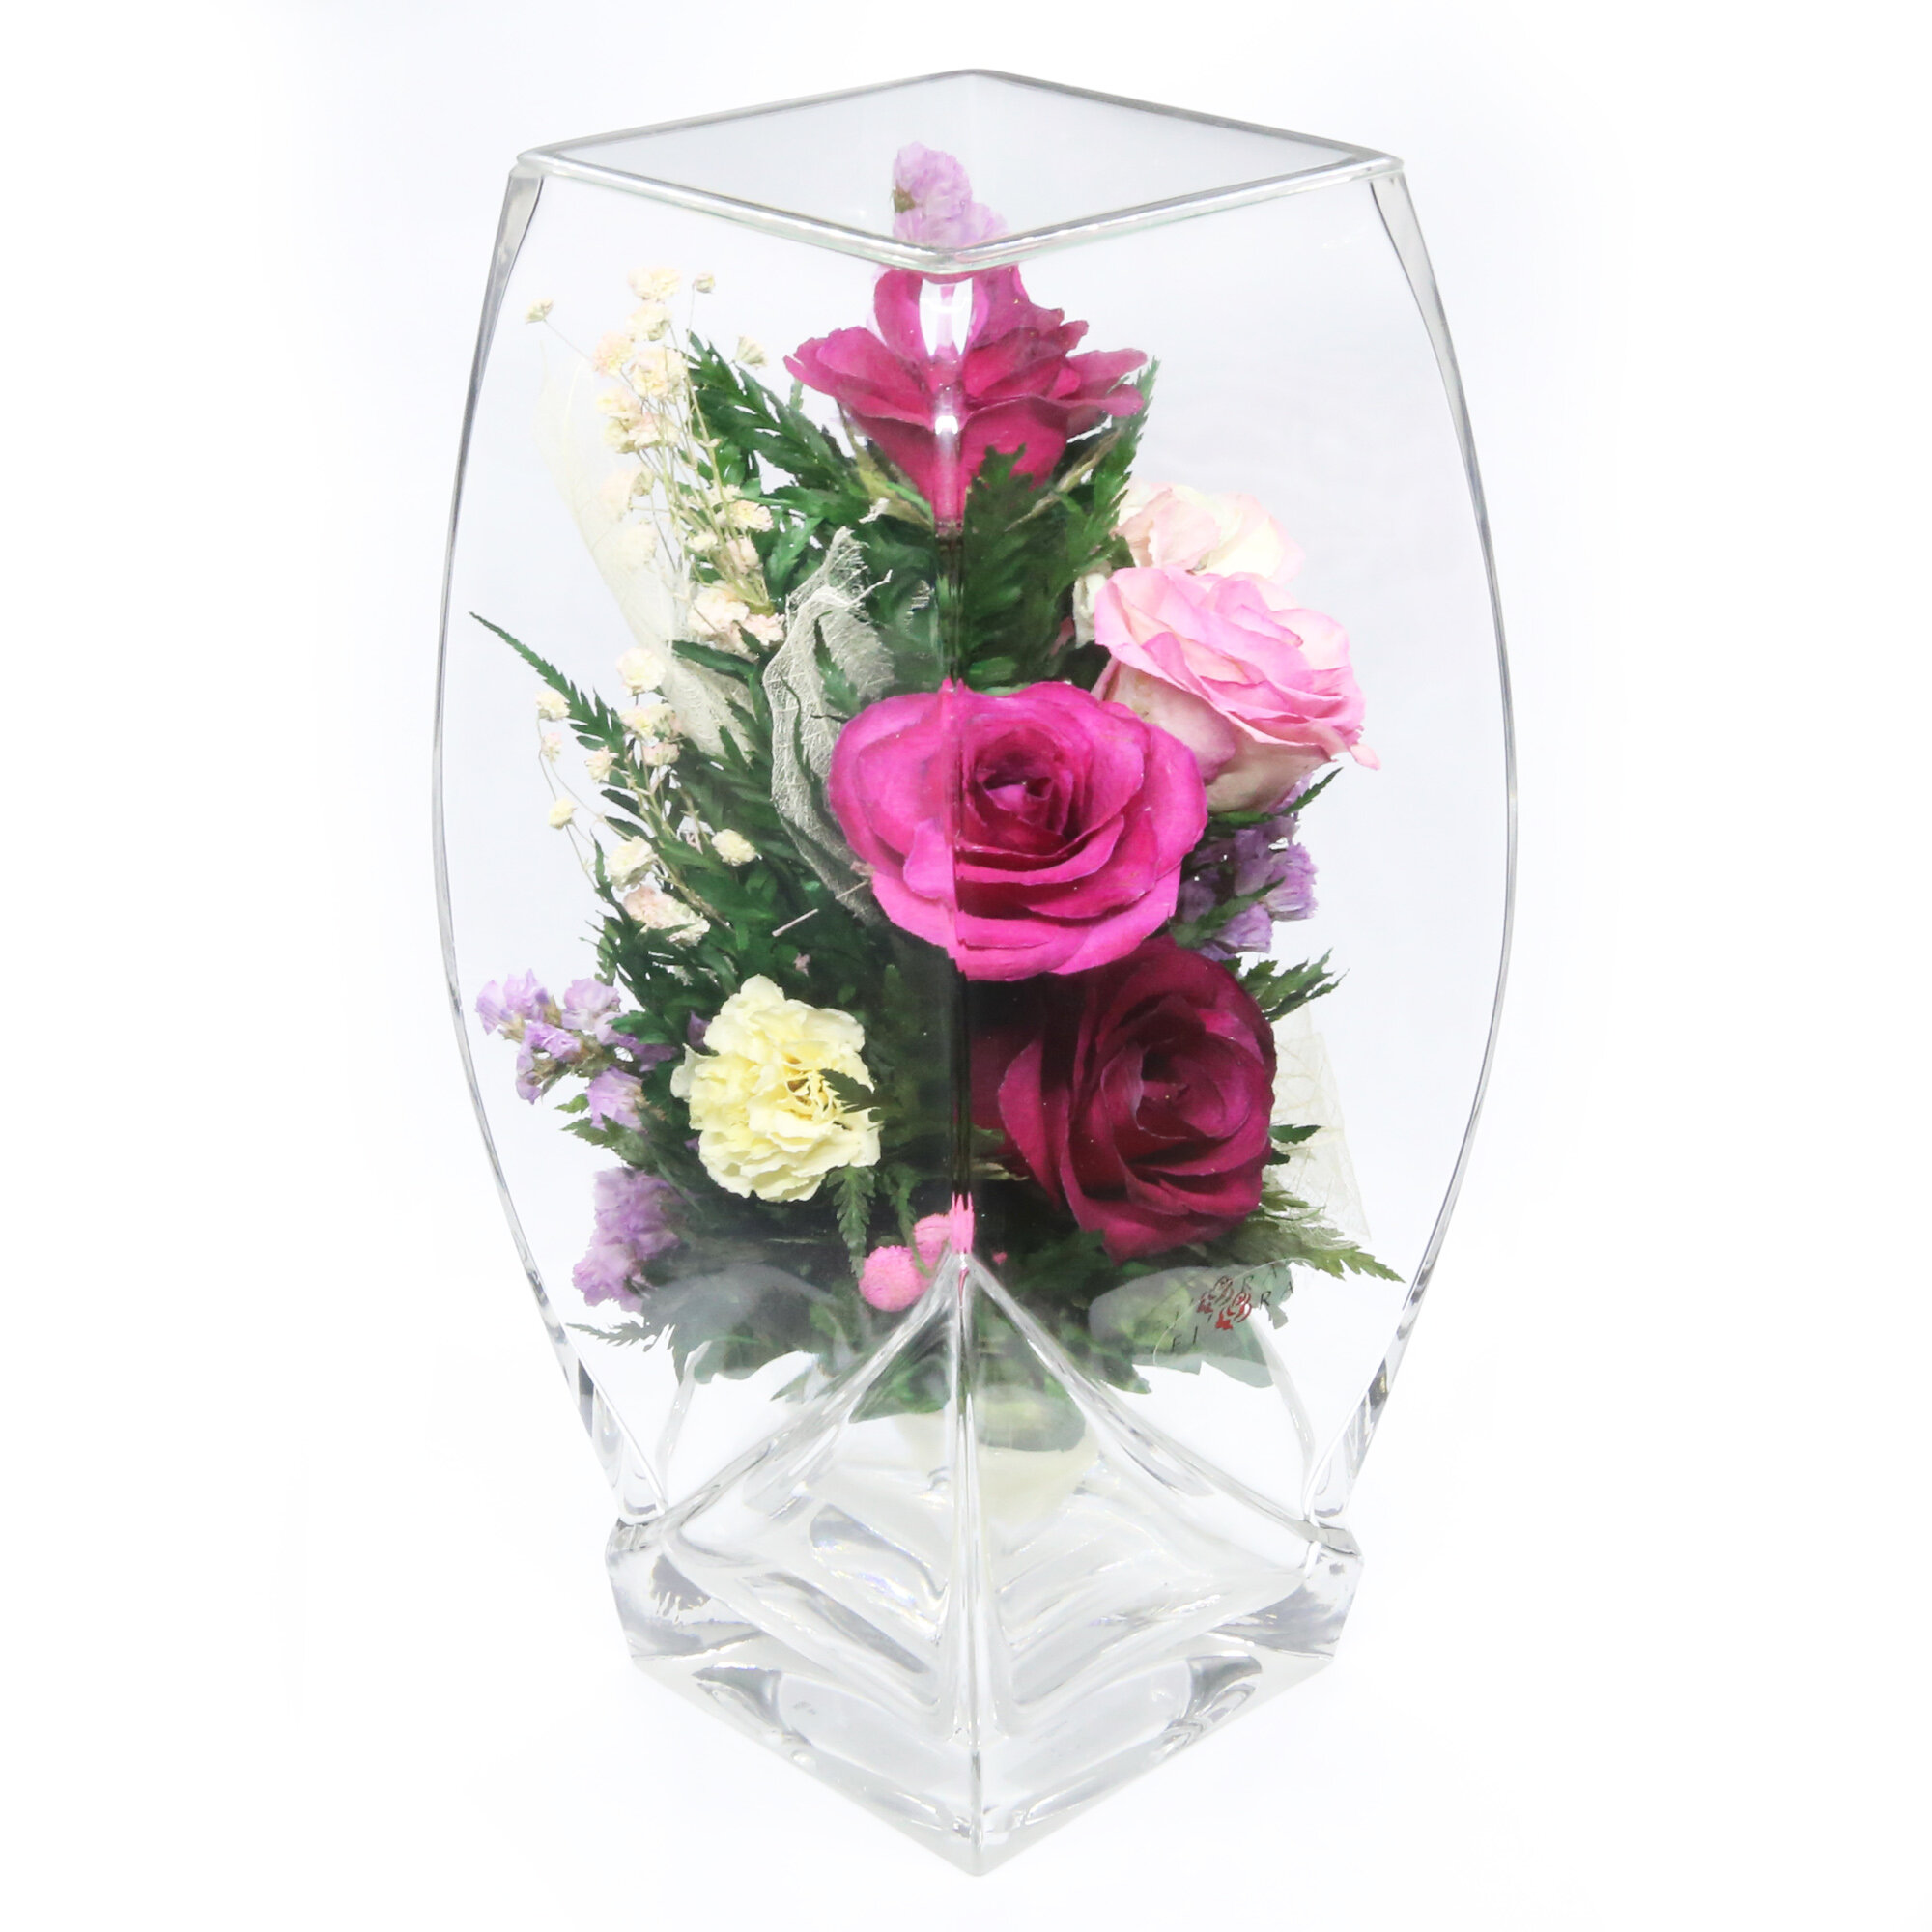 Charlton Home Mixed Floral Arrangements And Centerpiece In Decorative Vase Wayfair